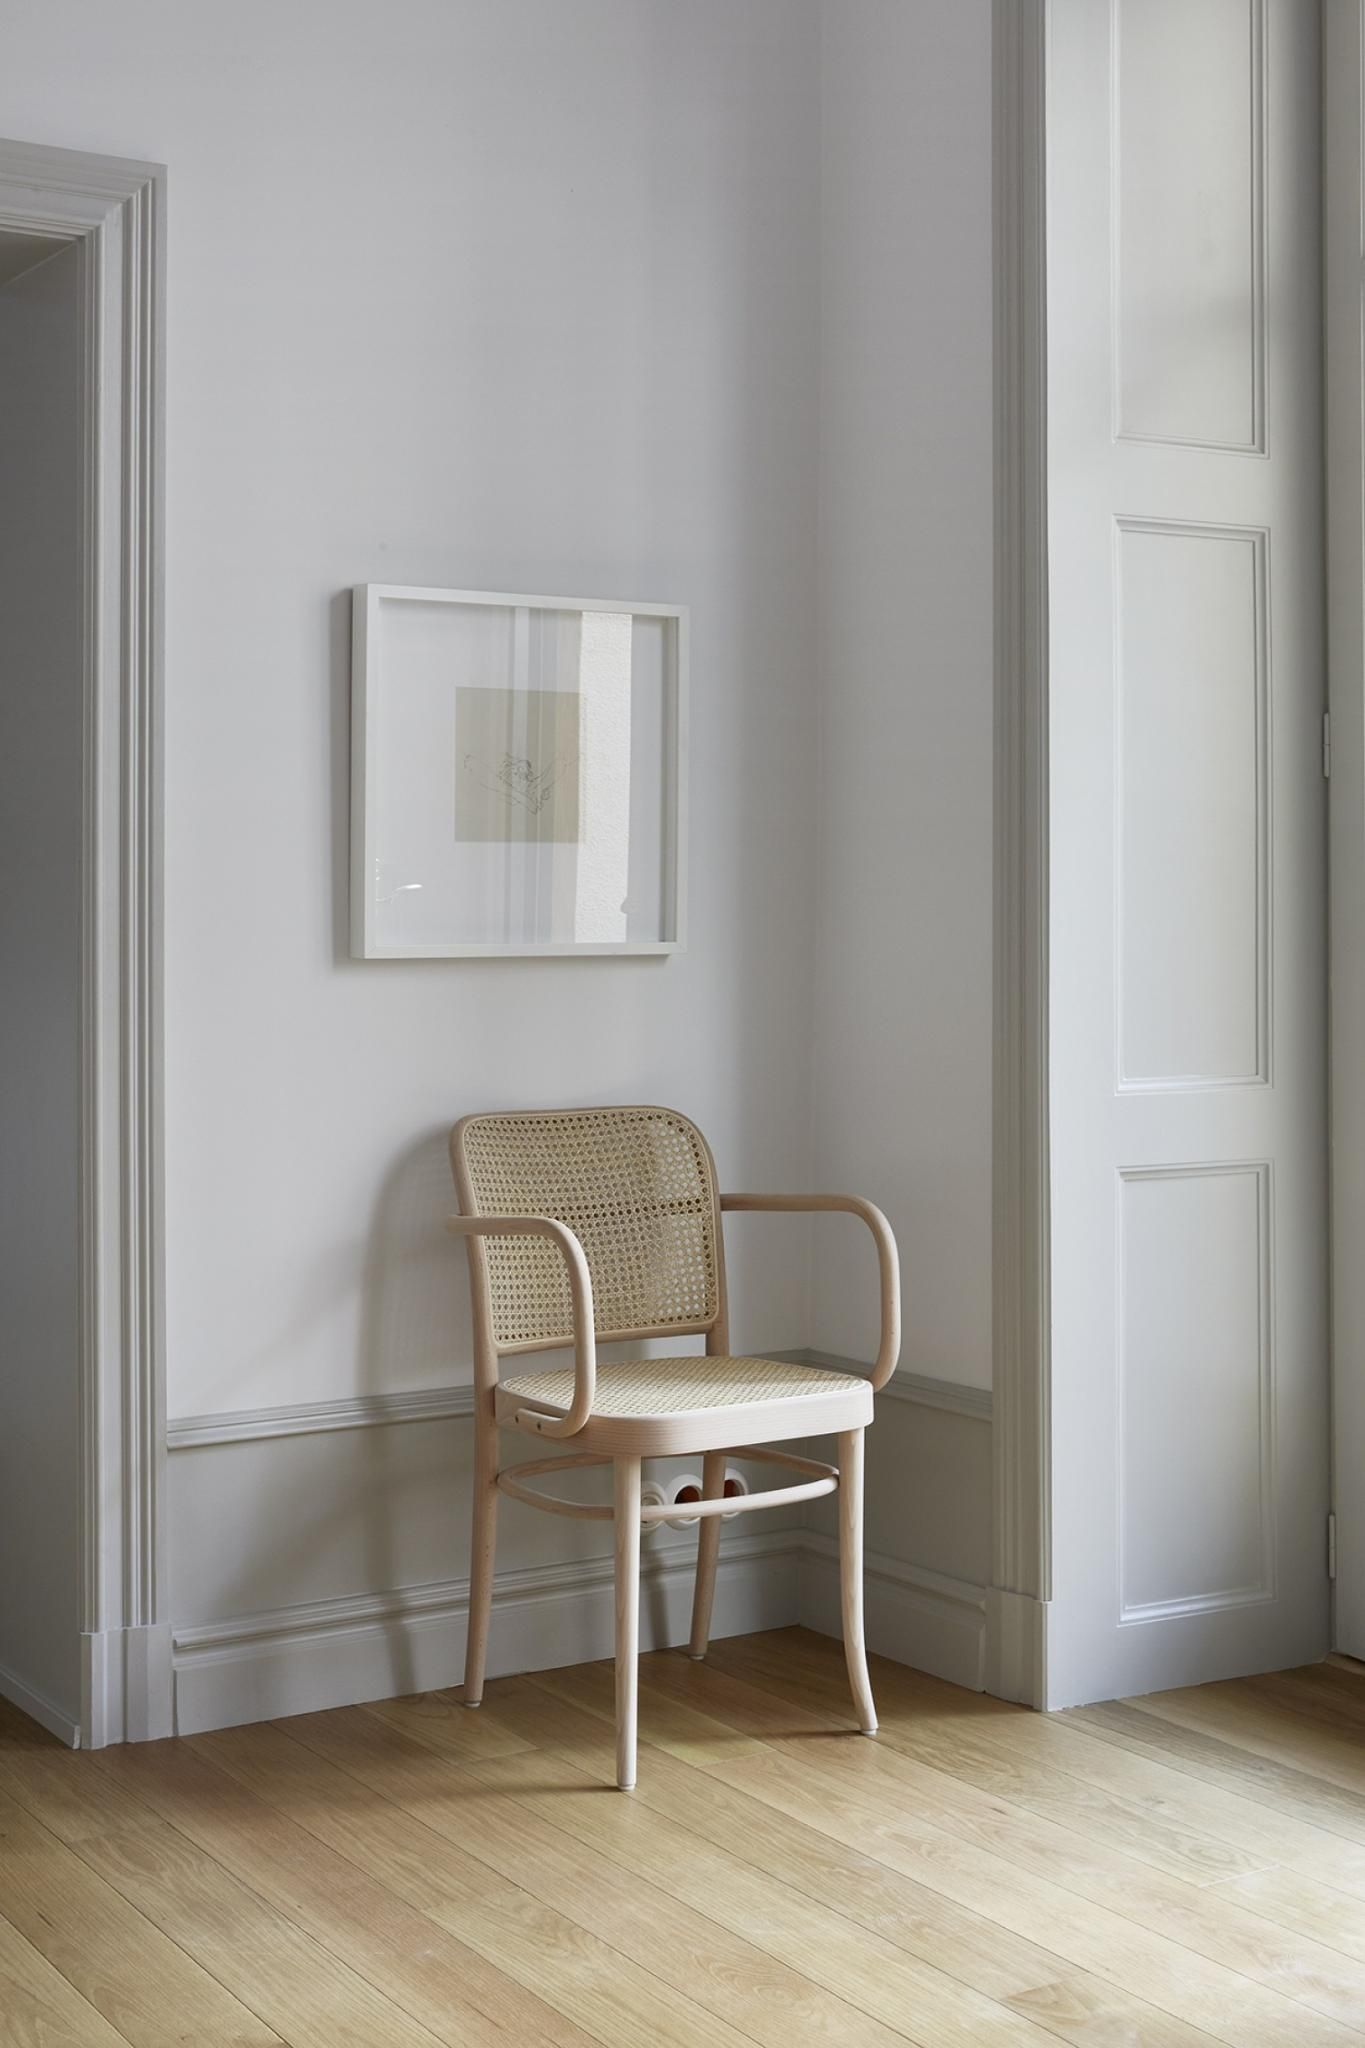 Serene stockholm apartment with bentwood chair and framed art 23 tranquil interiors with light grey and white and be inspired